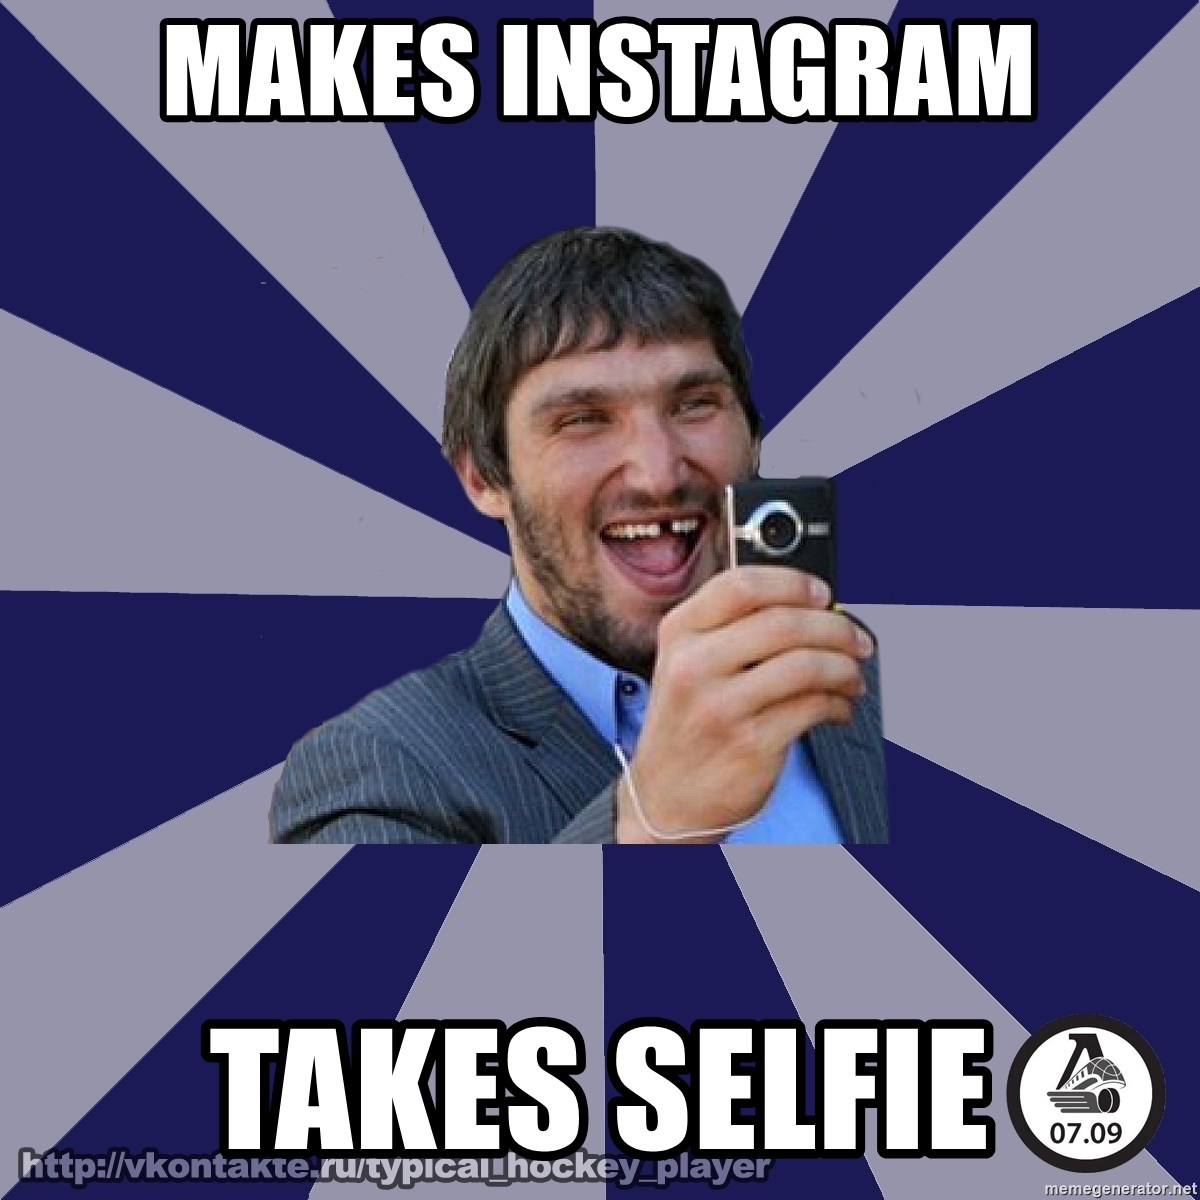 typical_hockey_player - Makes Instagram Takes selfie